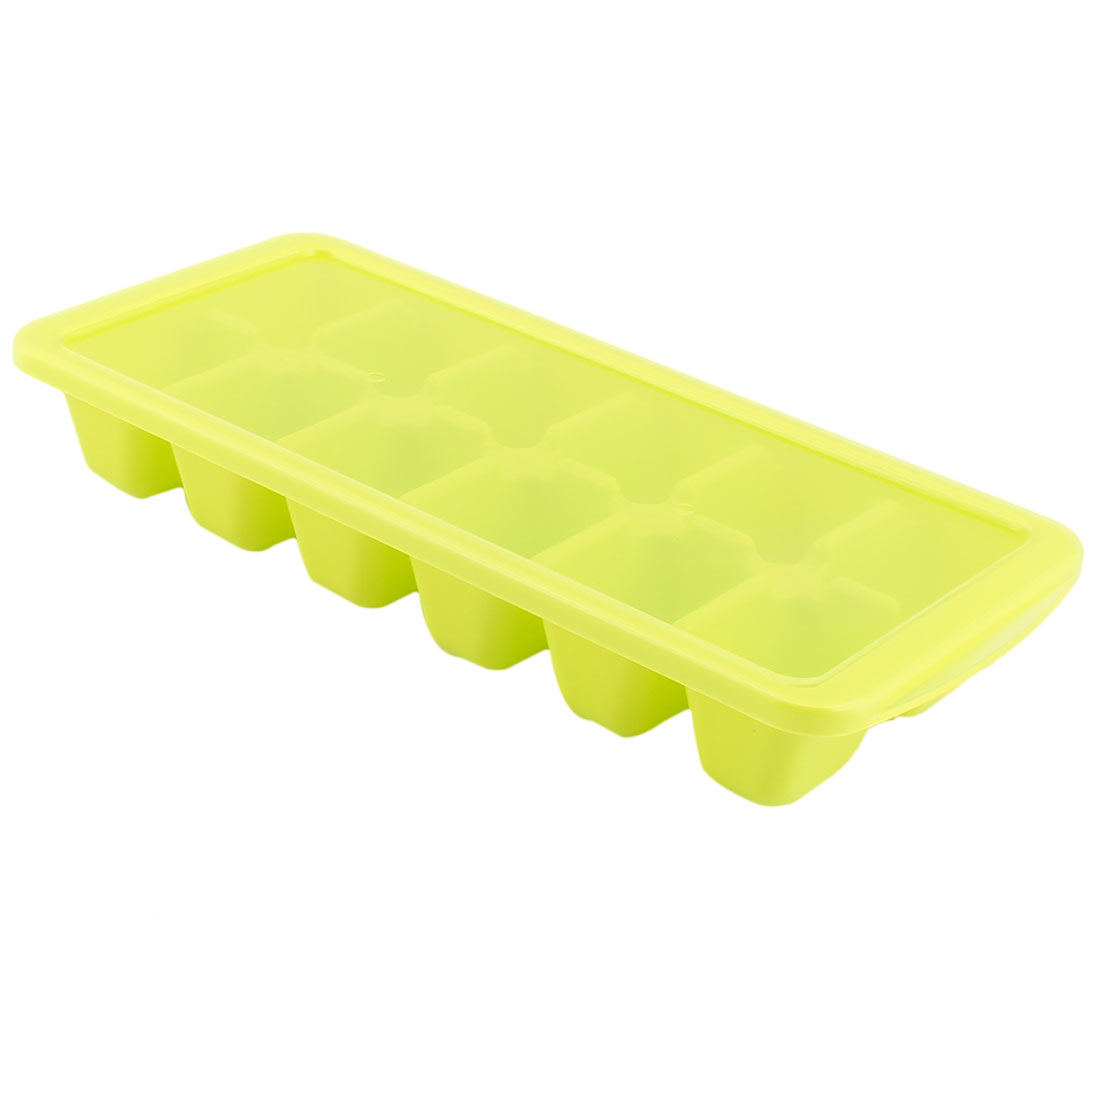 Household Plastic DIY Juice Popsicle Frame Ice Cube Tray Mold Maker Light Green